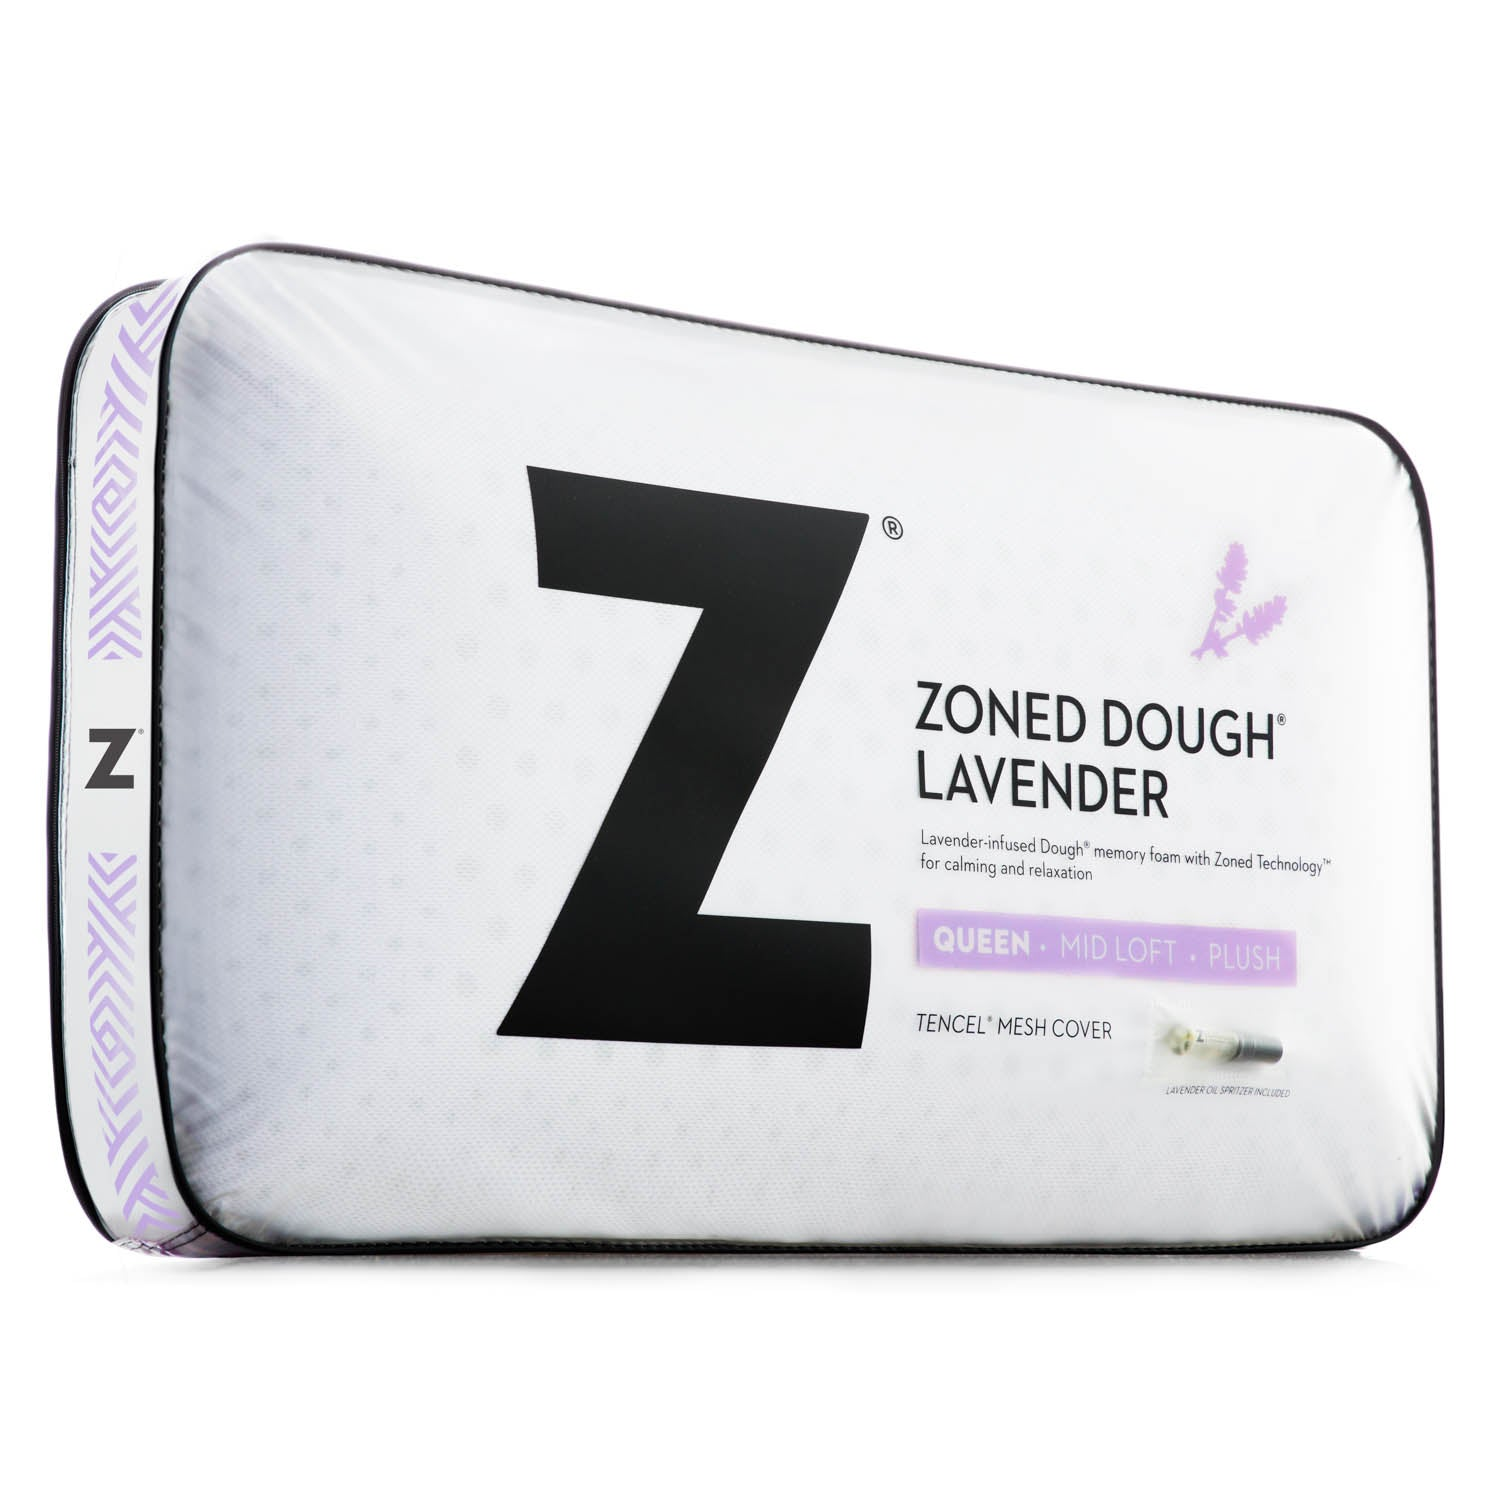 Zoned Dough® Lavender